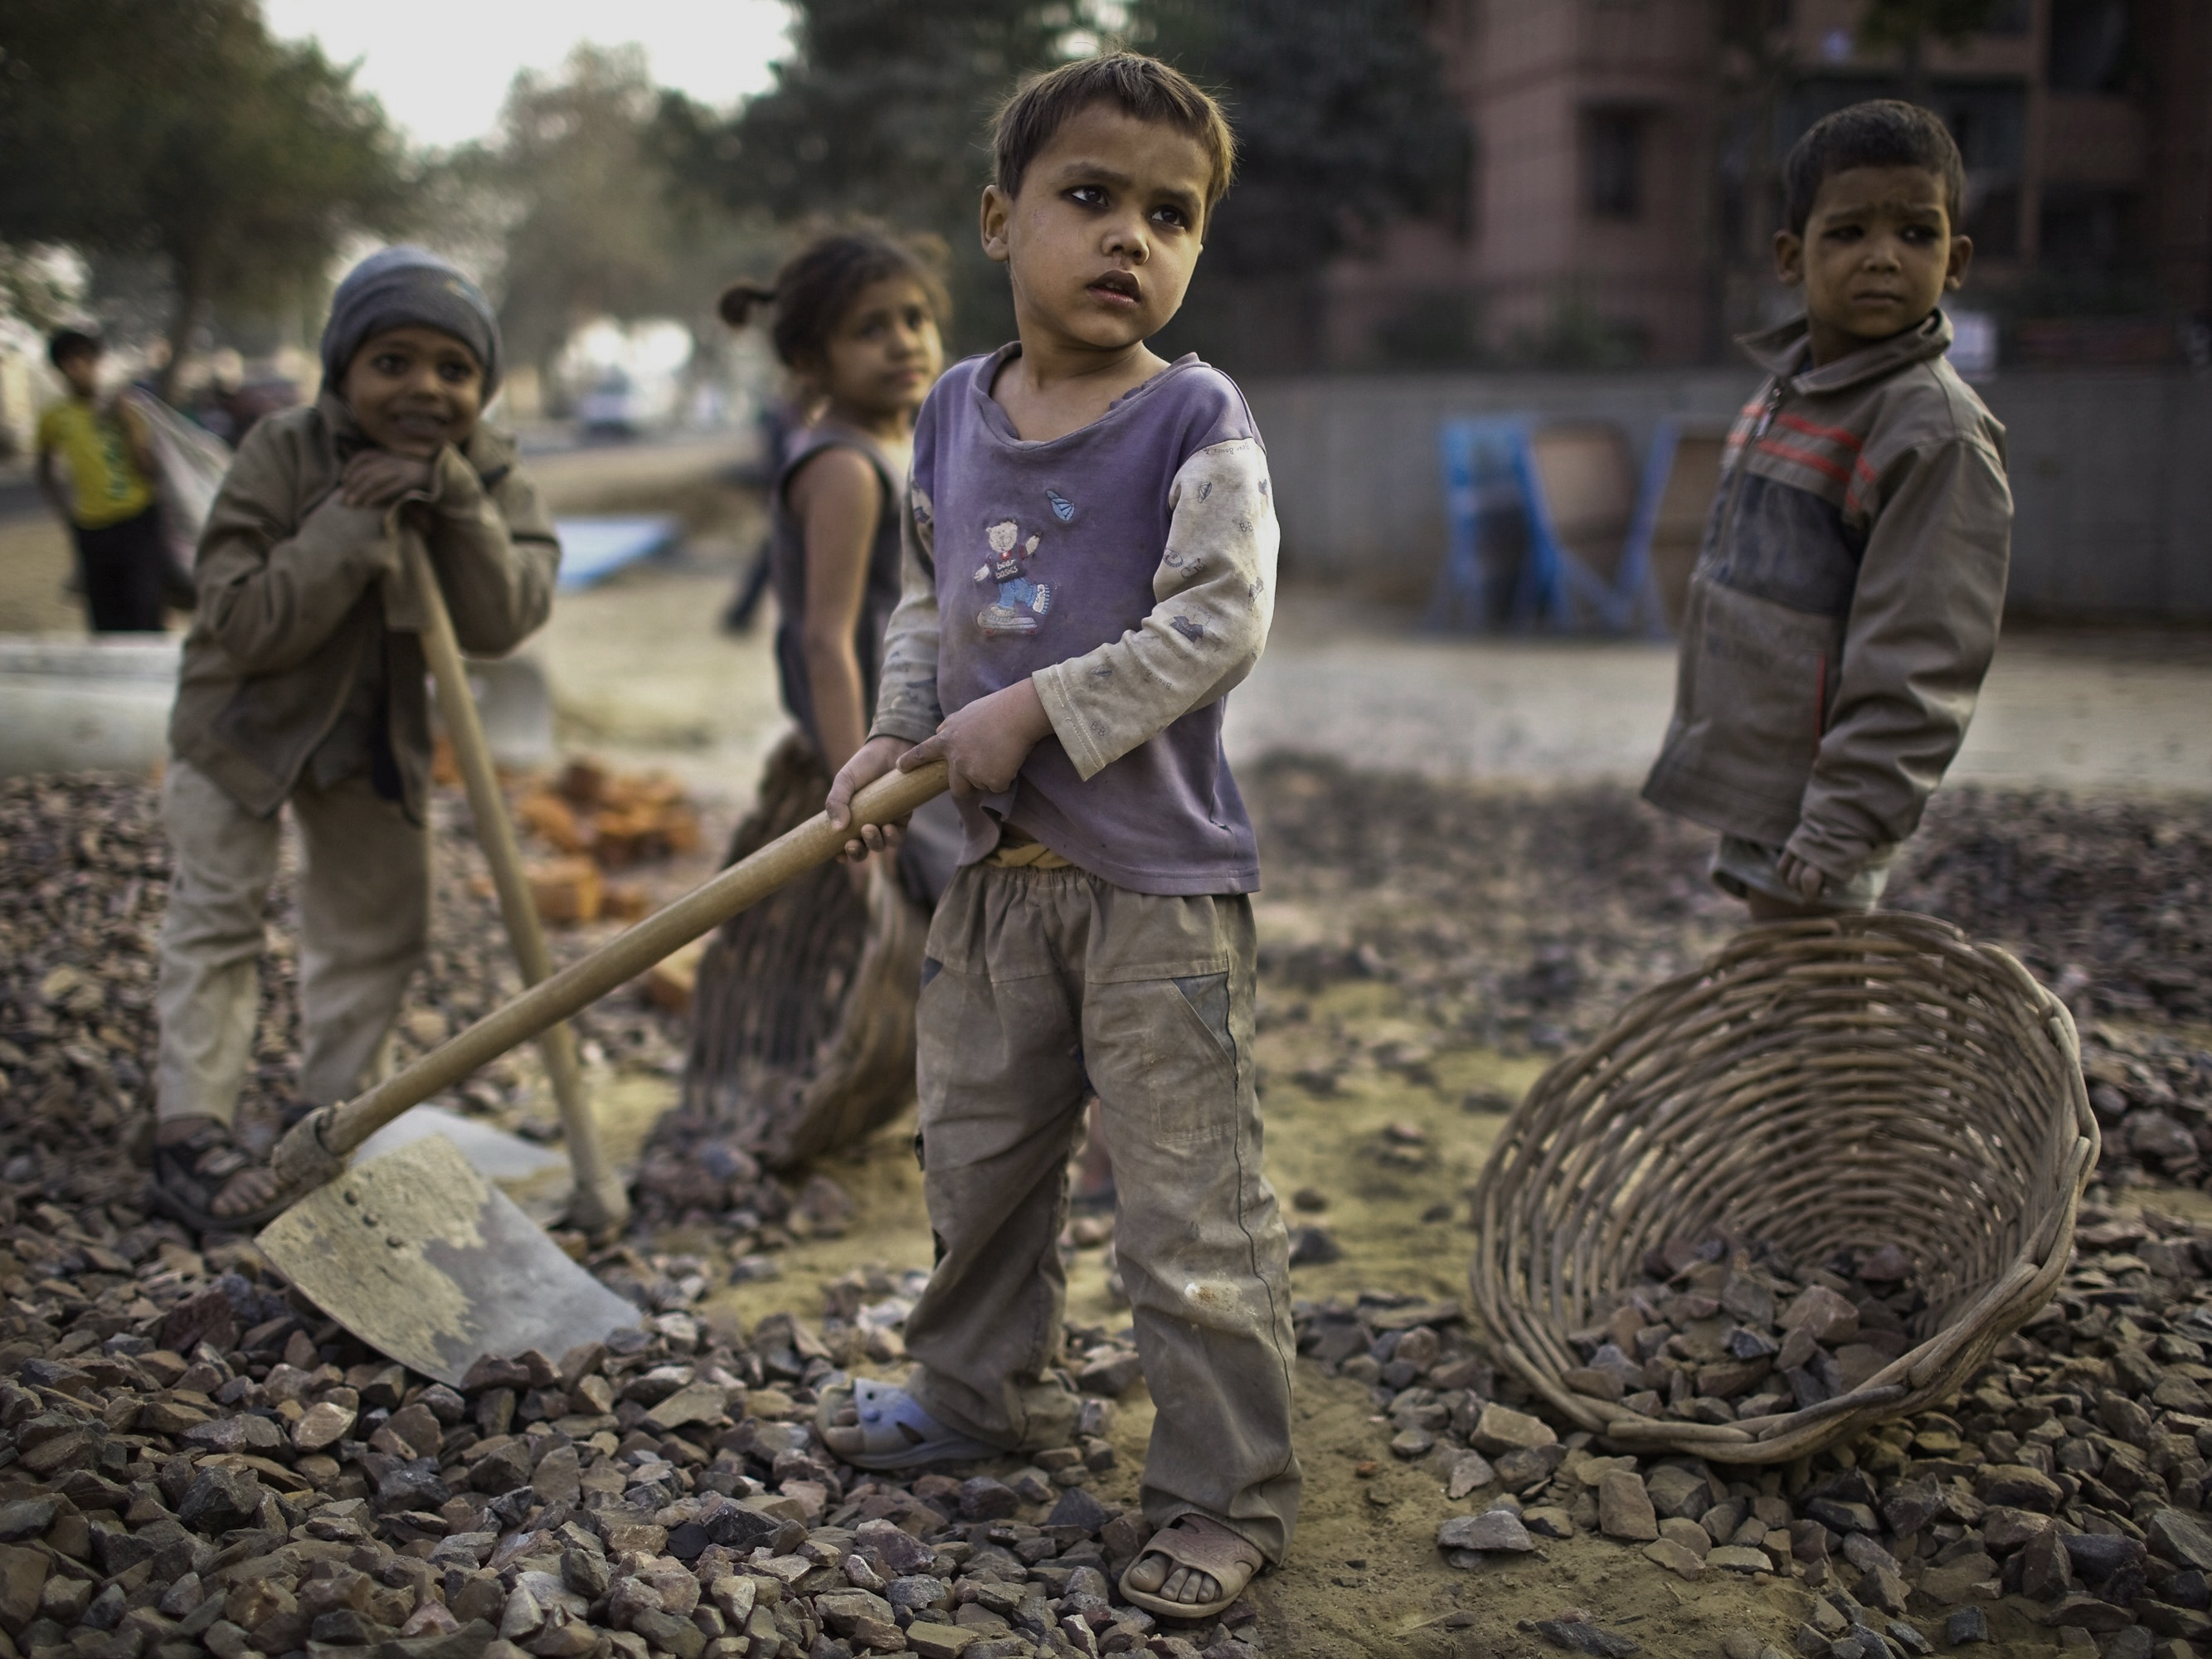 financially help to child labor prevention, donate for child labor prevention